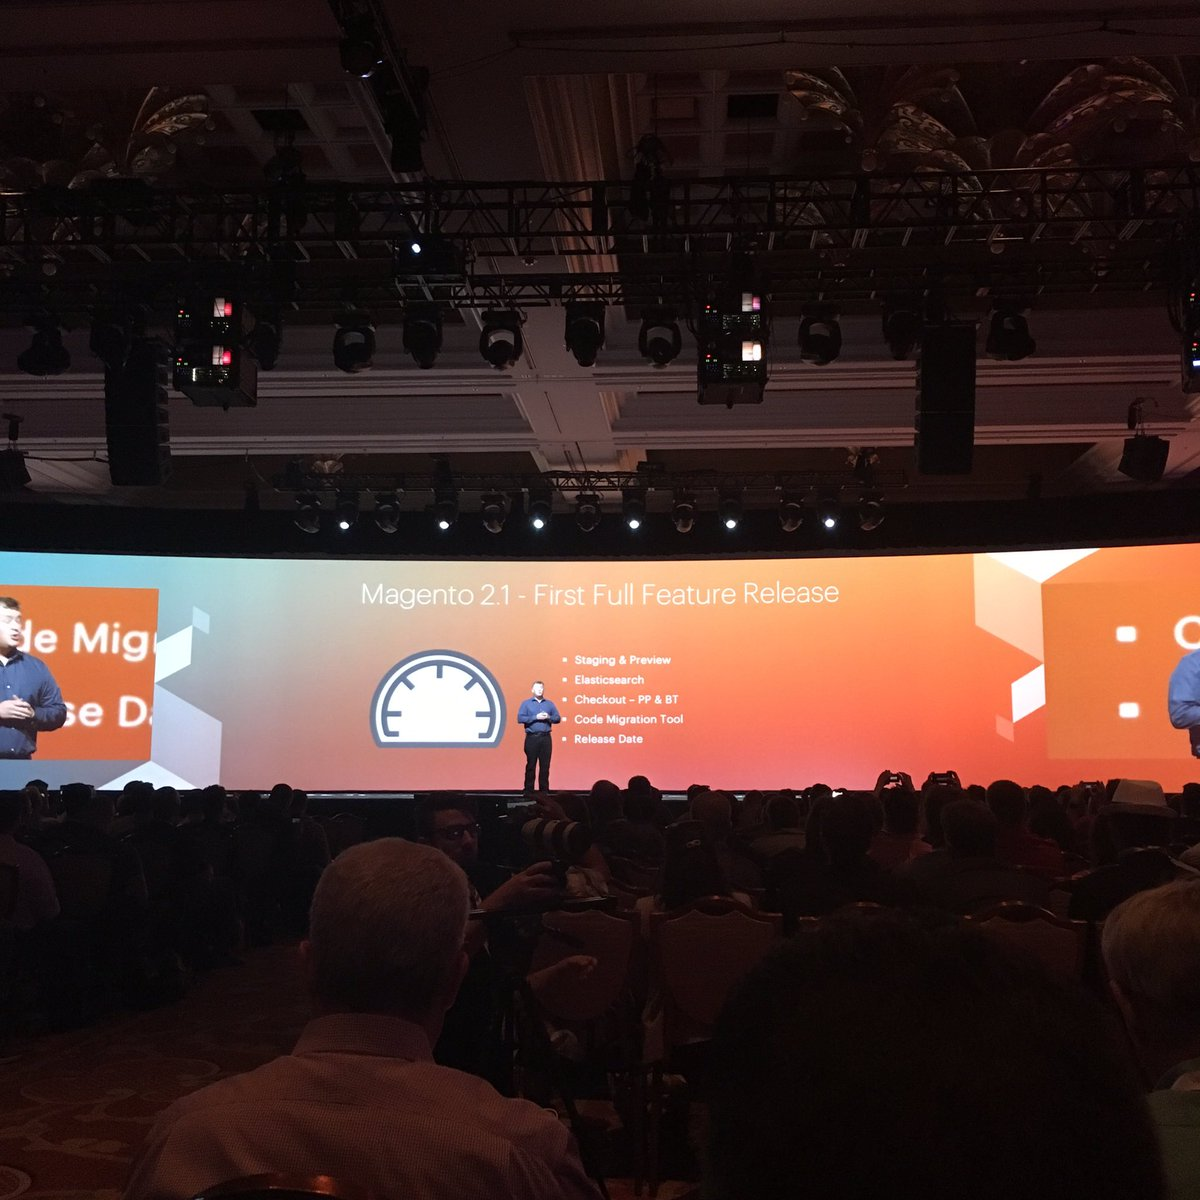 WebShopApps: Magento 2.1 to drop in June 2016 #MagentoImagine #Imagine2016 https://t.co/nYabipbeR8